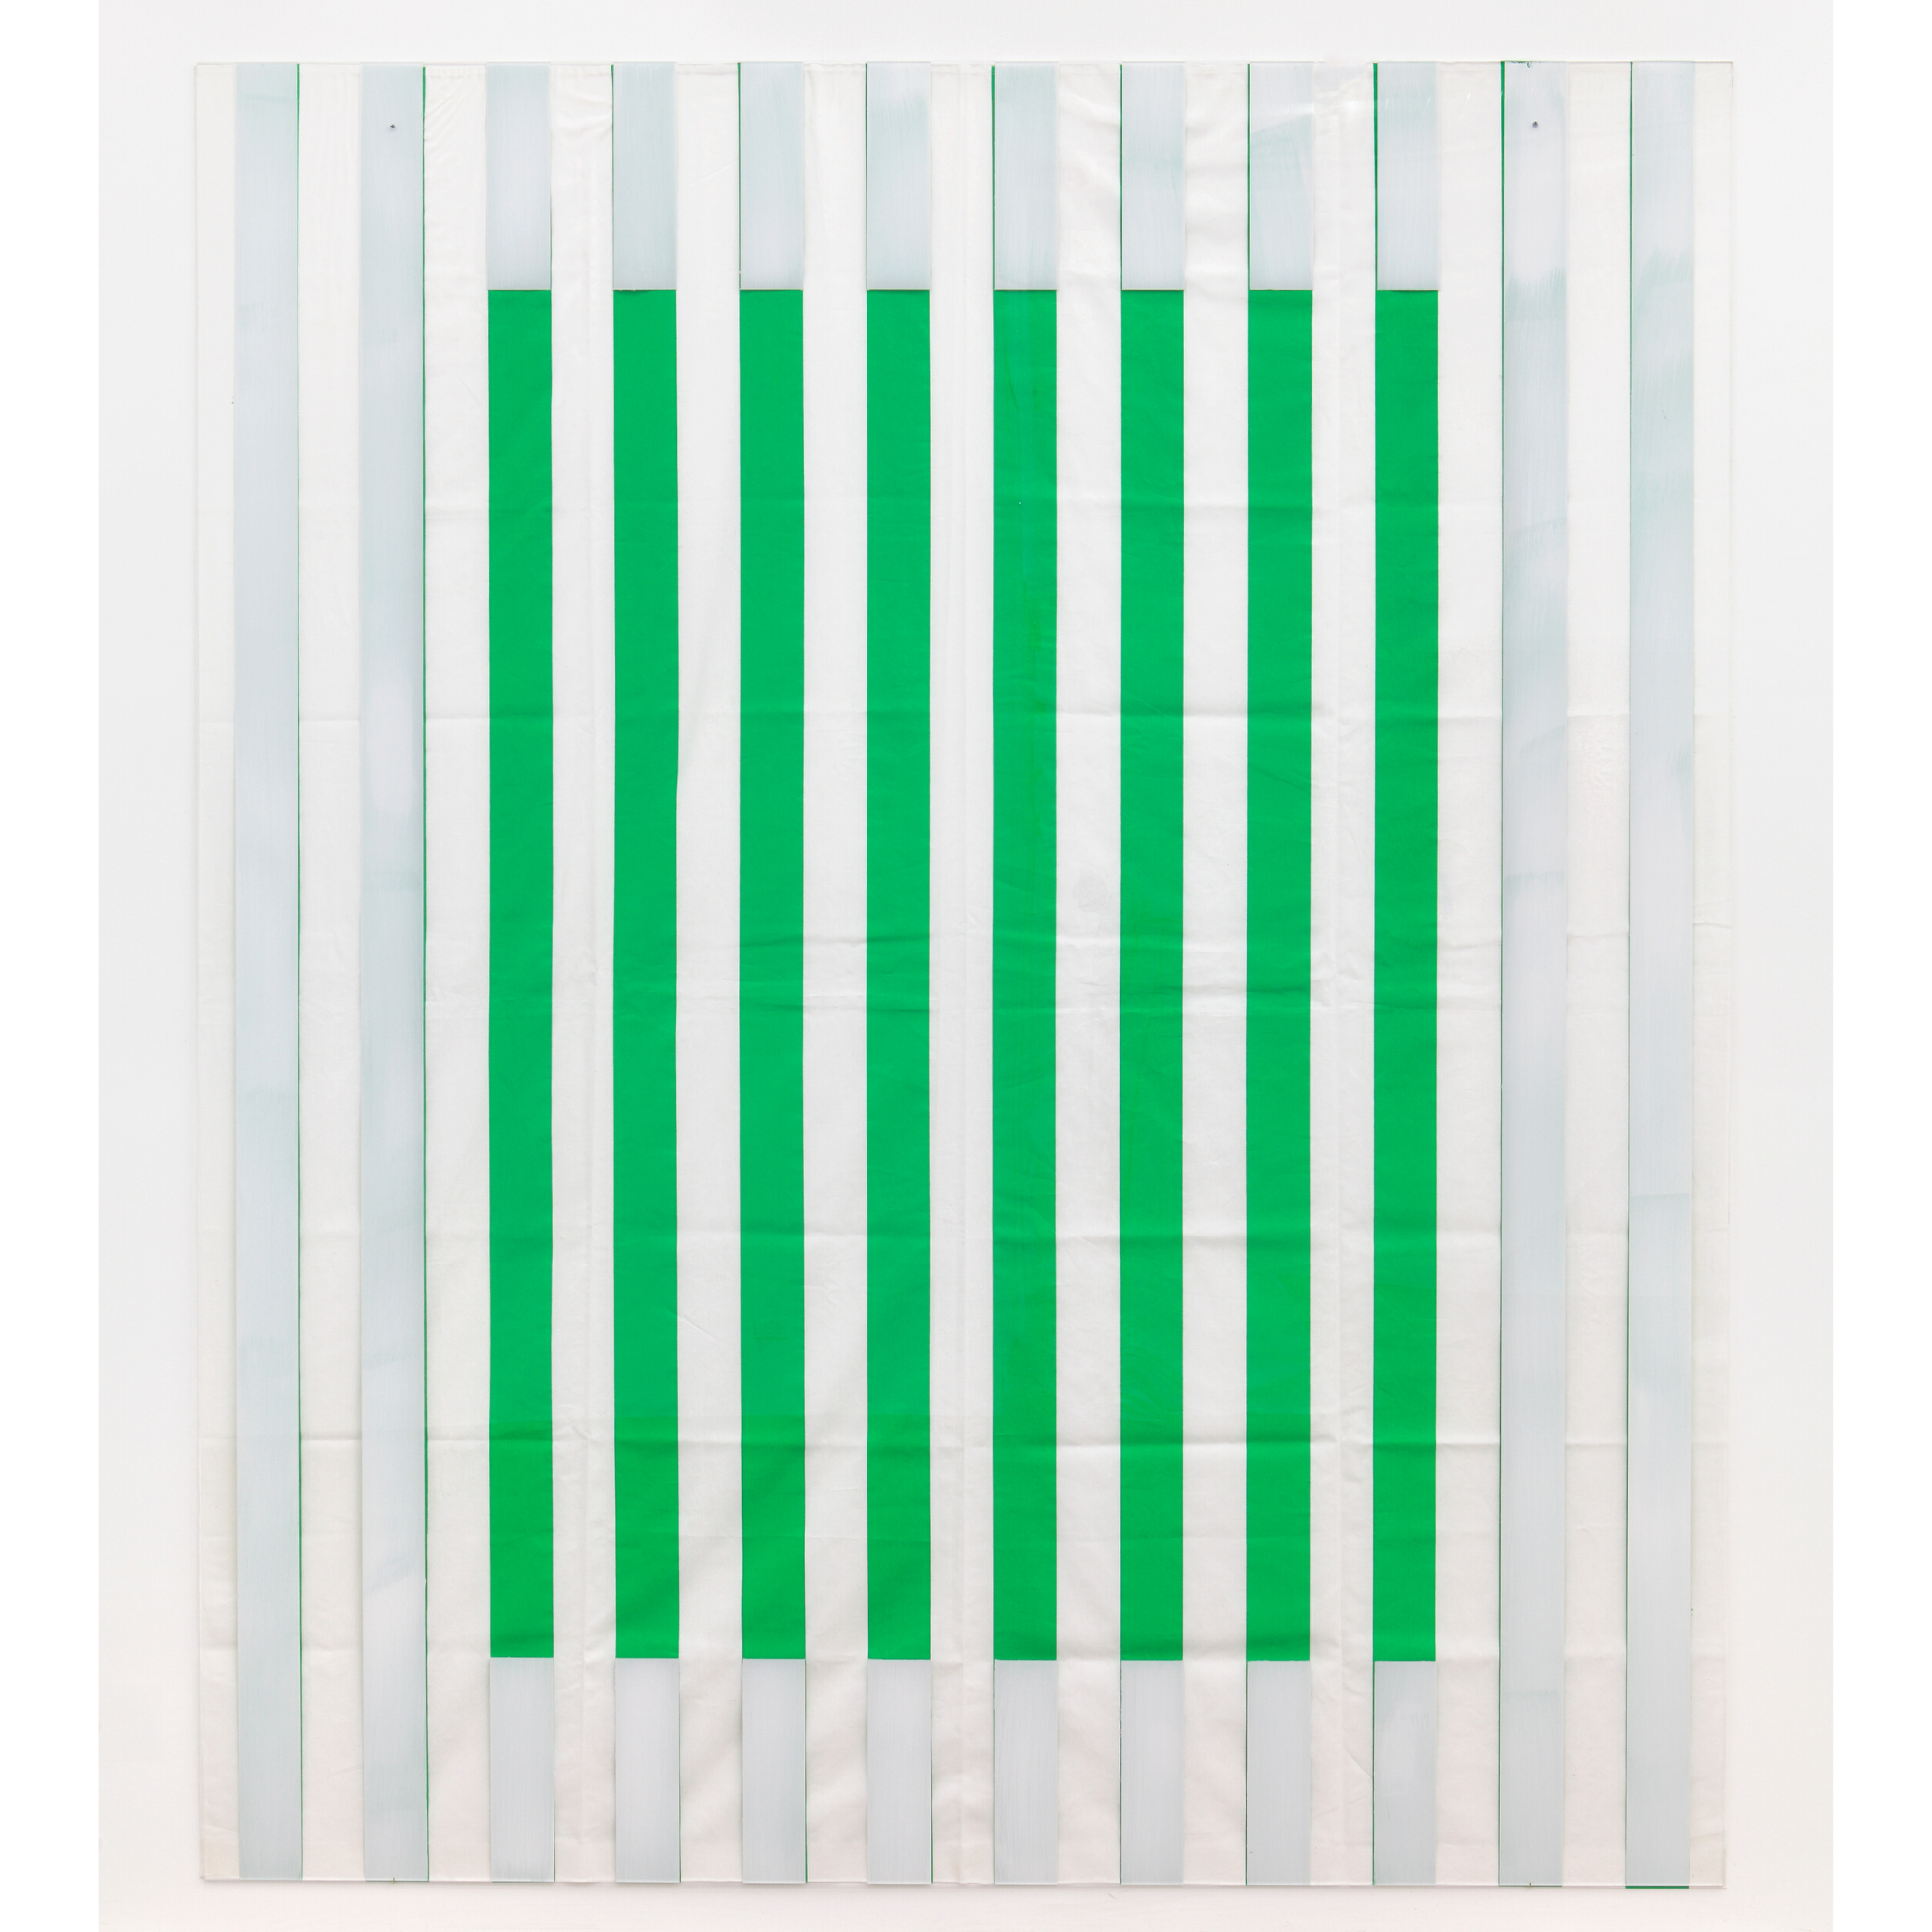 Photo Souvenir: Paint On/Under Plexiglas on Serigraphy, Framing No. 1 Green, Situated Work